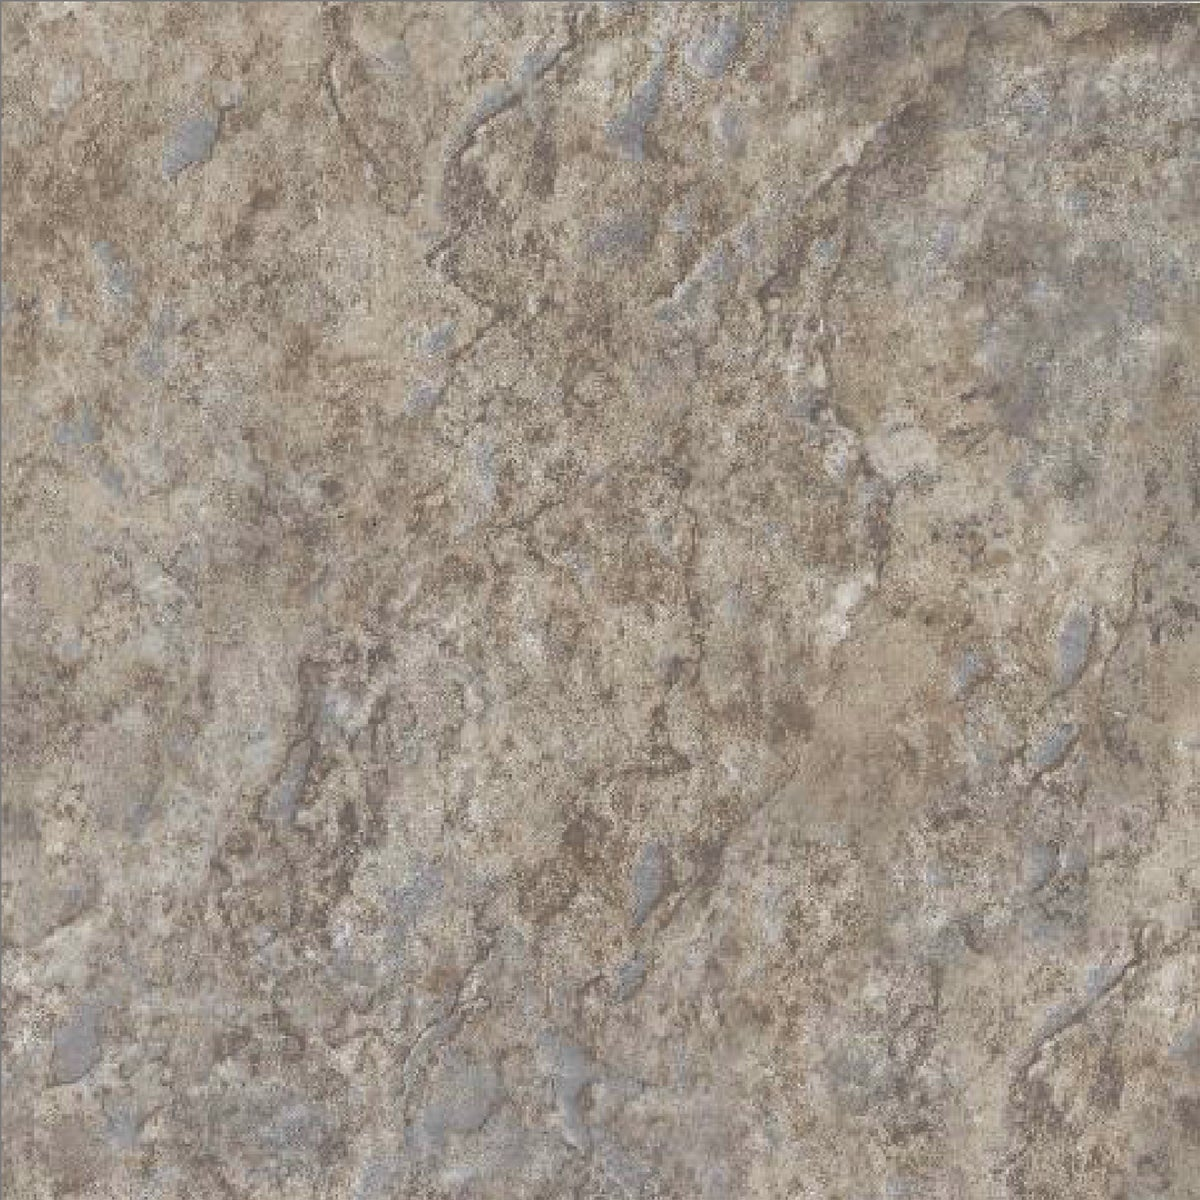 GRAY STONE VINYL TILE - 25311 by Armstrong World Ind